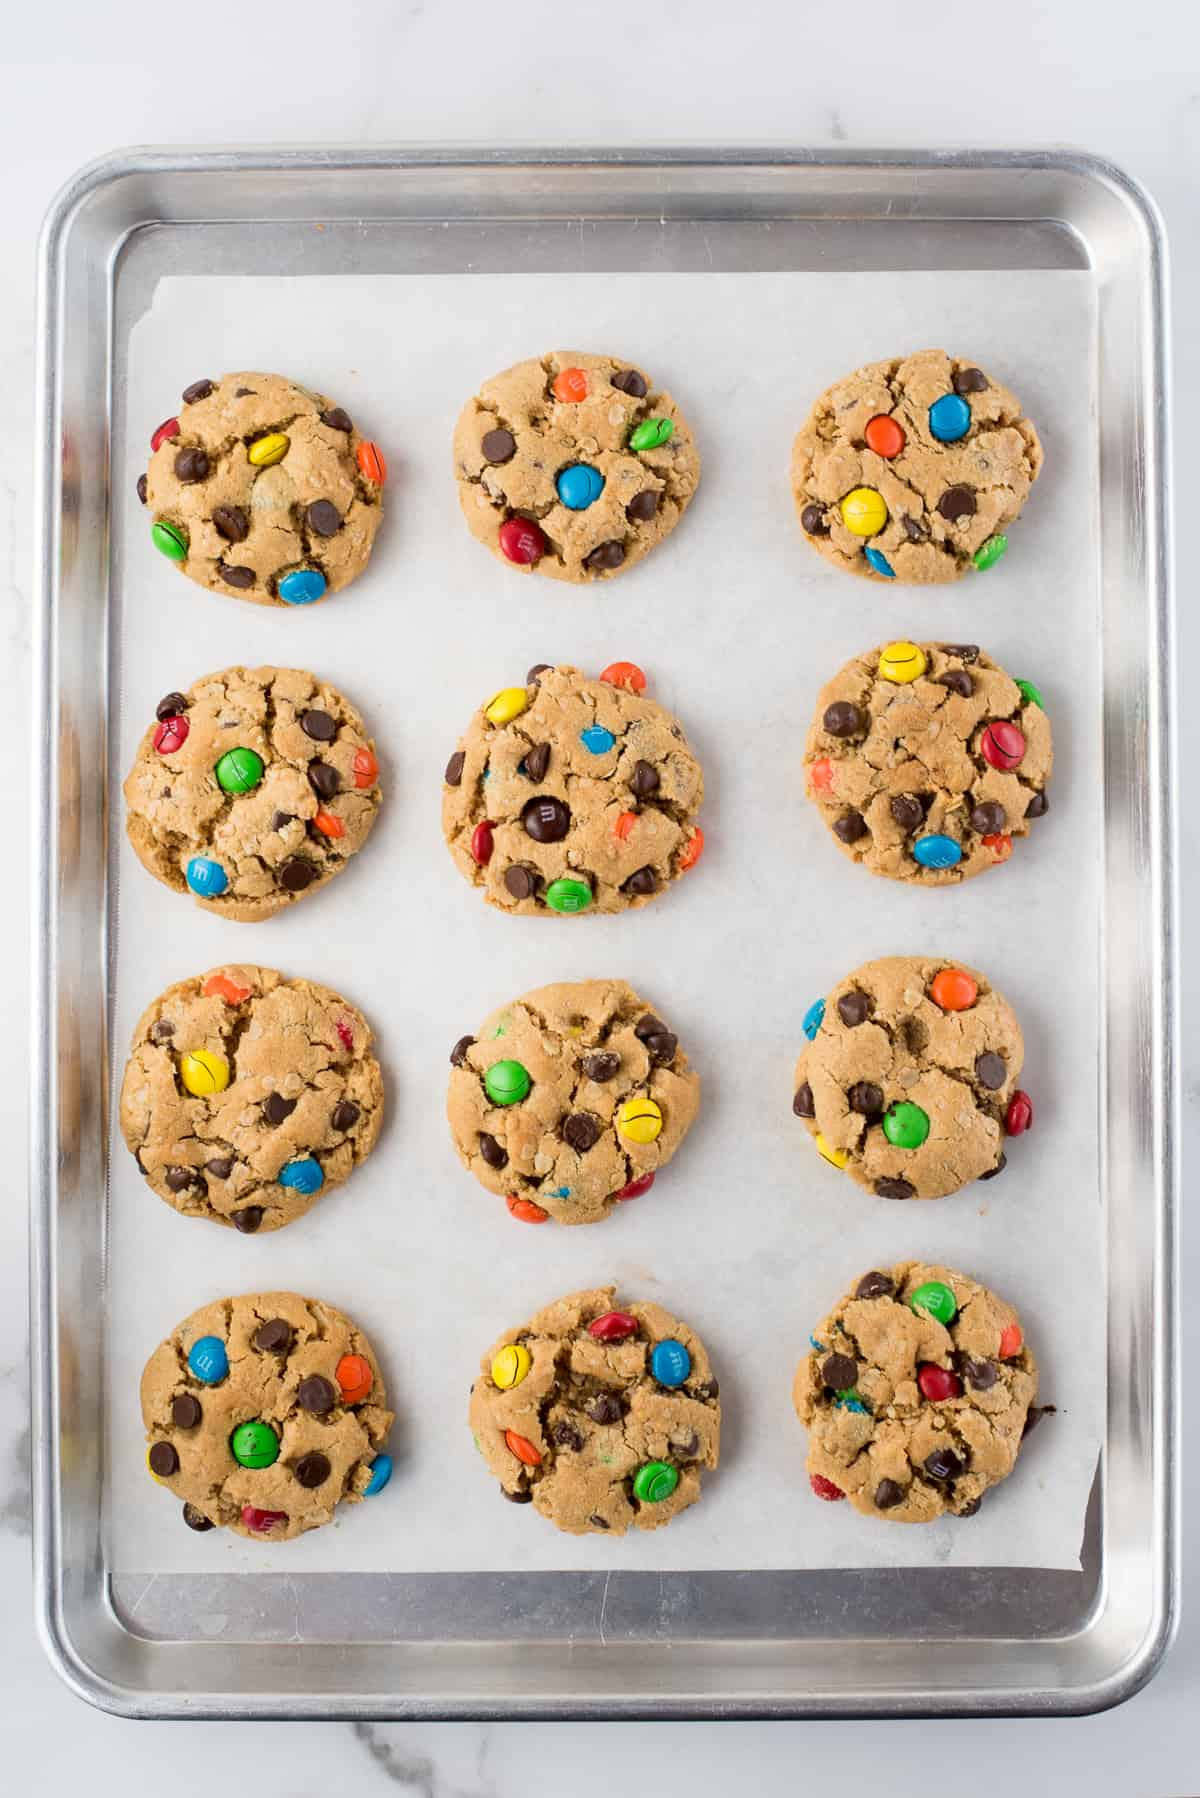 12 monster cookies on baking sheet with parchment paper